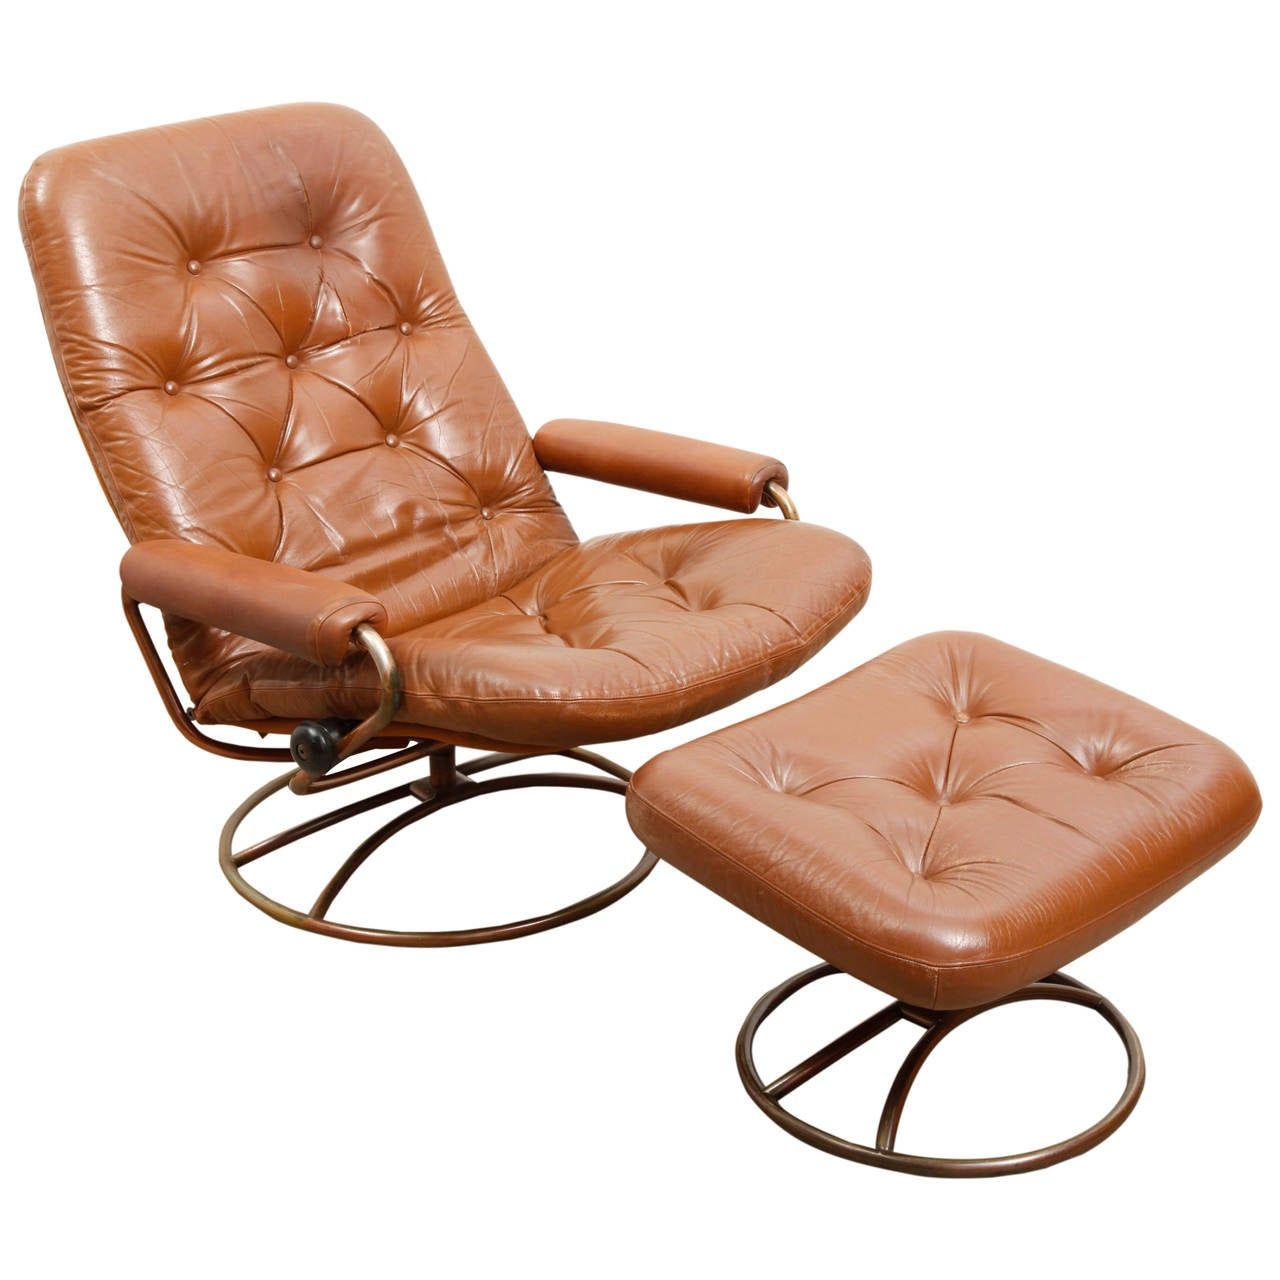 Chairs With Ottomans Bruno Mathsson Swivel Lounge Chair With Ottoman At 1stdibs